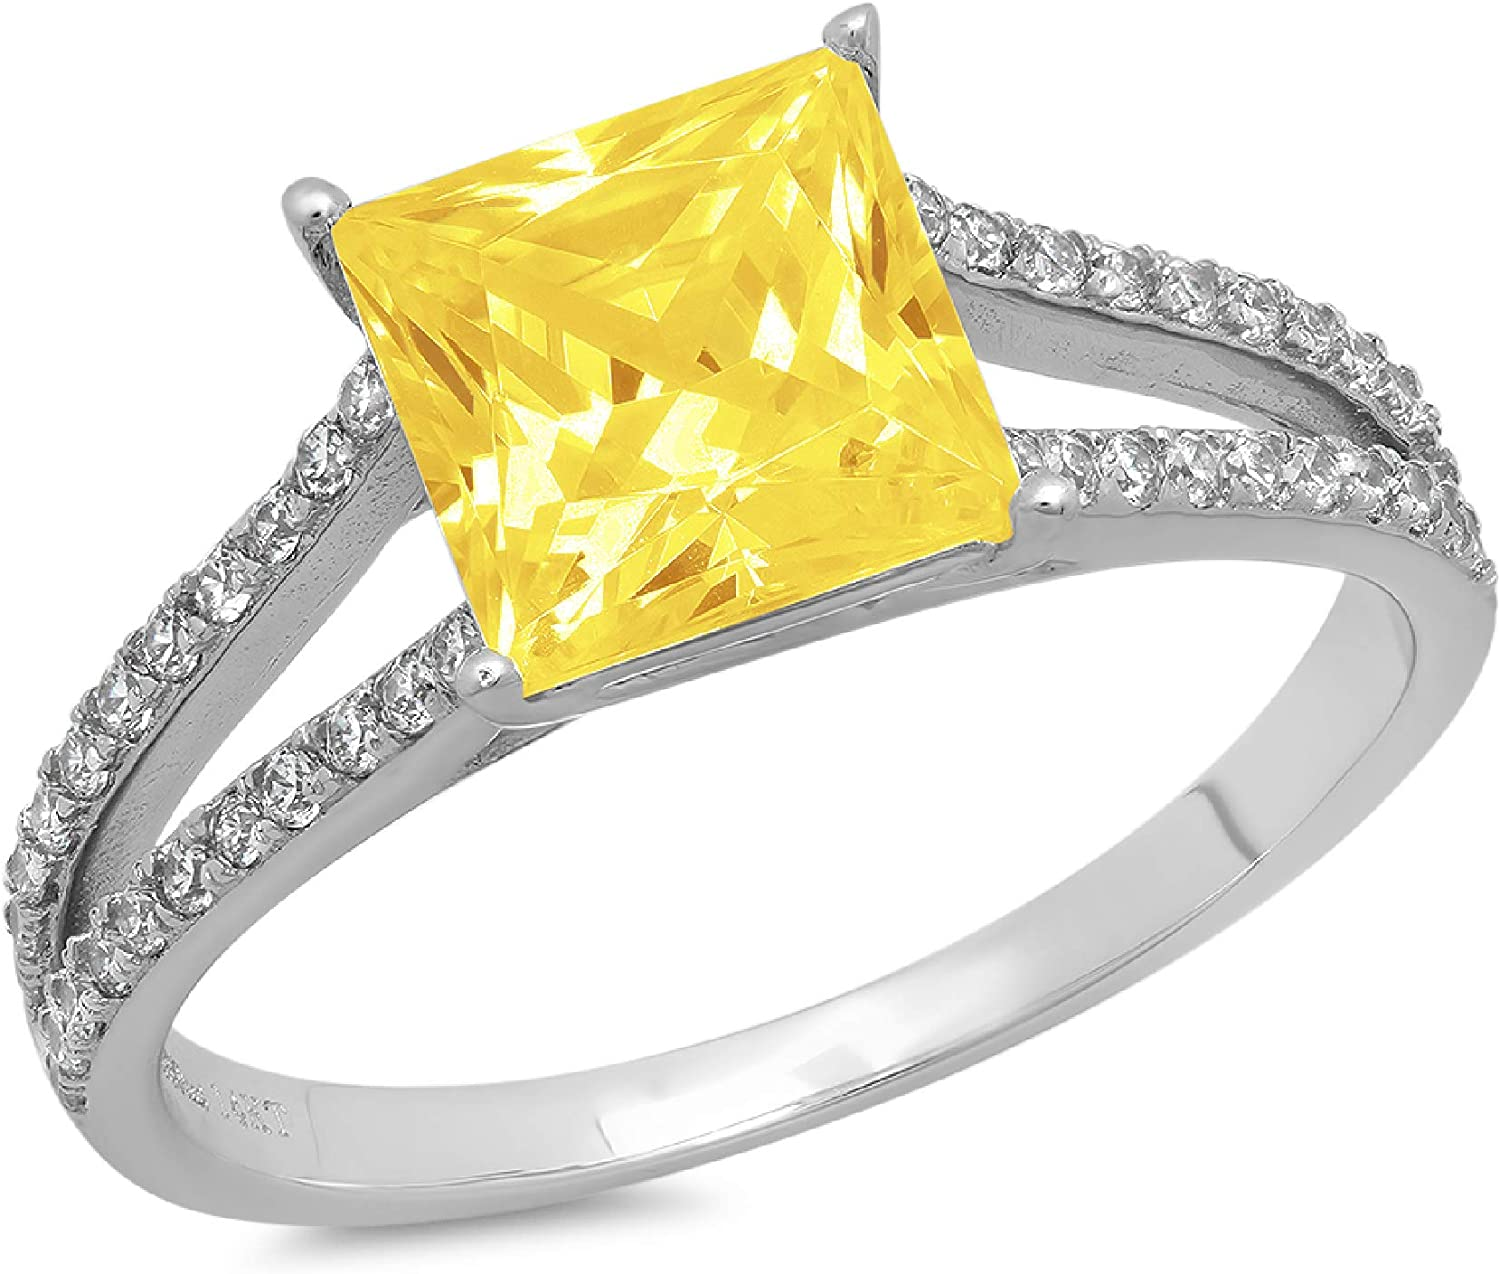 2.36ct Princess Cut Solitaire with Accent split shank Canary Yellow Ideal VVS1 Simulated Diamond CZ Engagement Promise Statement Anniversary Bridal Wedding Ring 14k White Gold